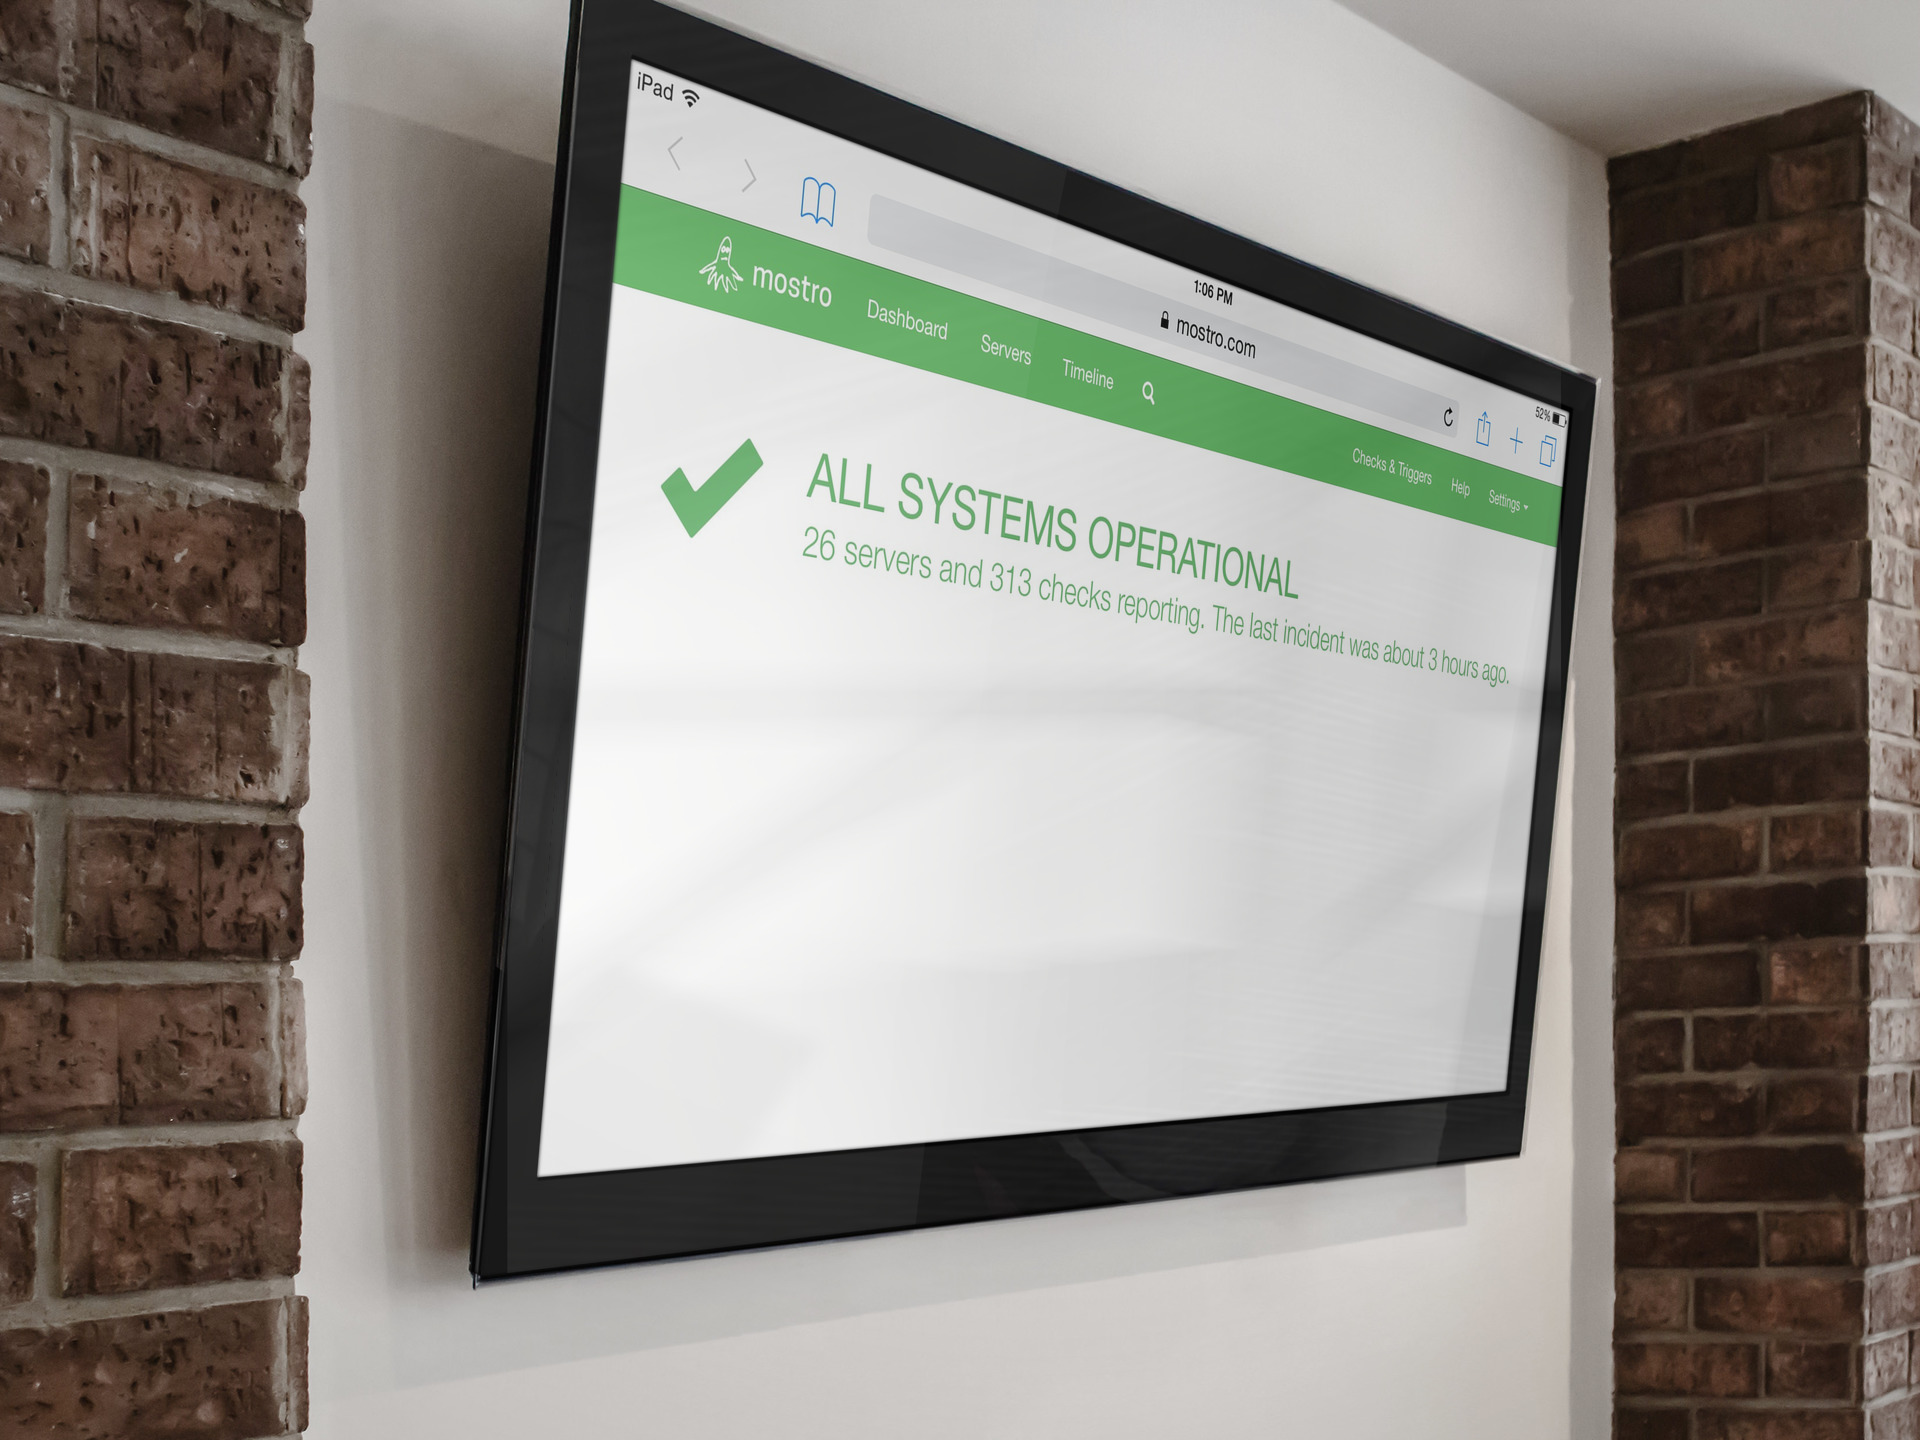 TV mounted on a wall displaying the Mostro dashboard with a green navbar and a green checkmark with the text: 'All systems operational. 26 servers and 313 checks reporting. The last incident was about 3 hours ago.'